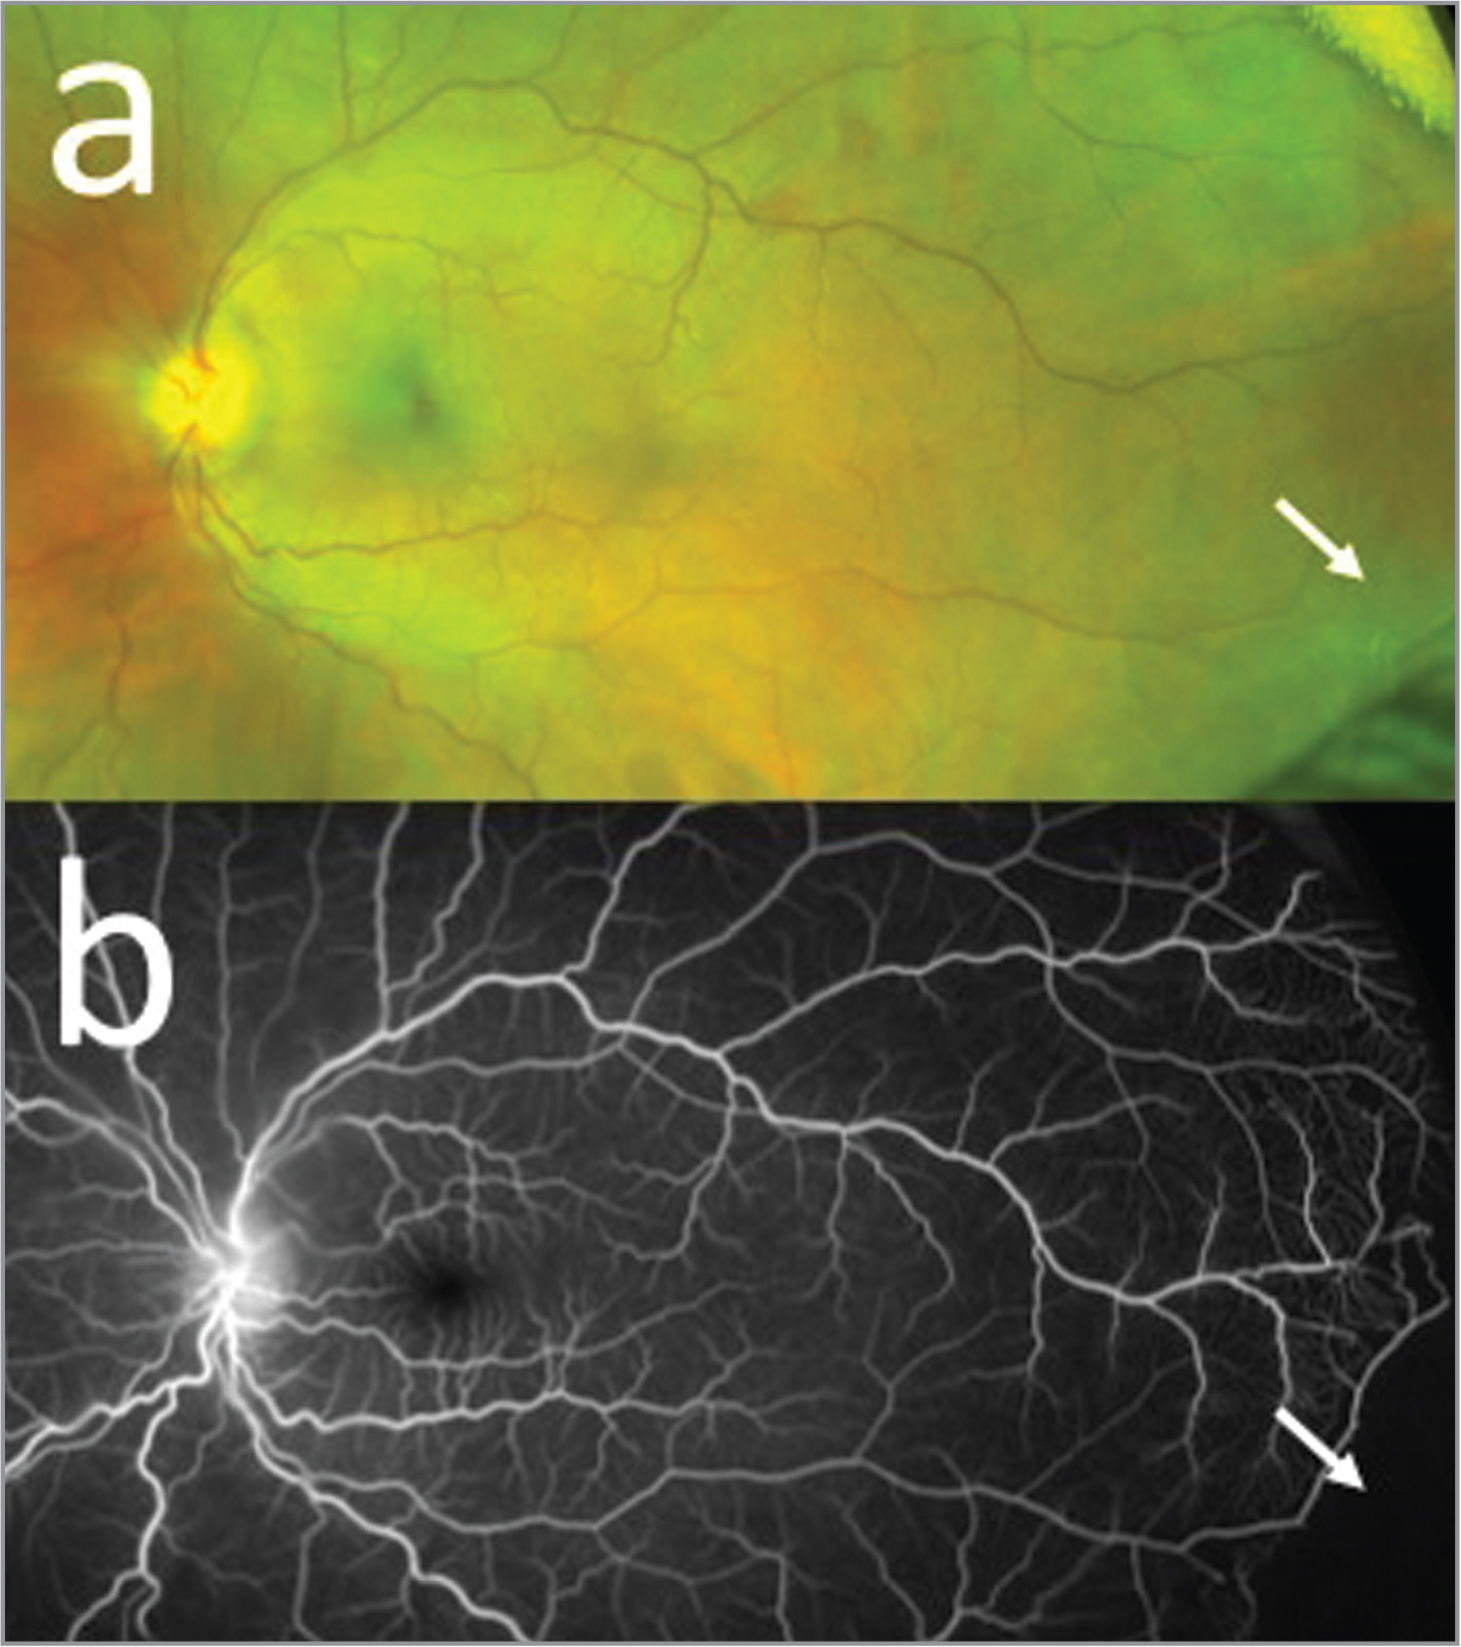 Fundus photo (a) and fluorescein angiography (b) demonstrating sclerotic vessel (arrow) in a 15-year-old male with sickle cell retinopathy with a history of trauma to the left eye.